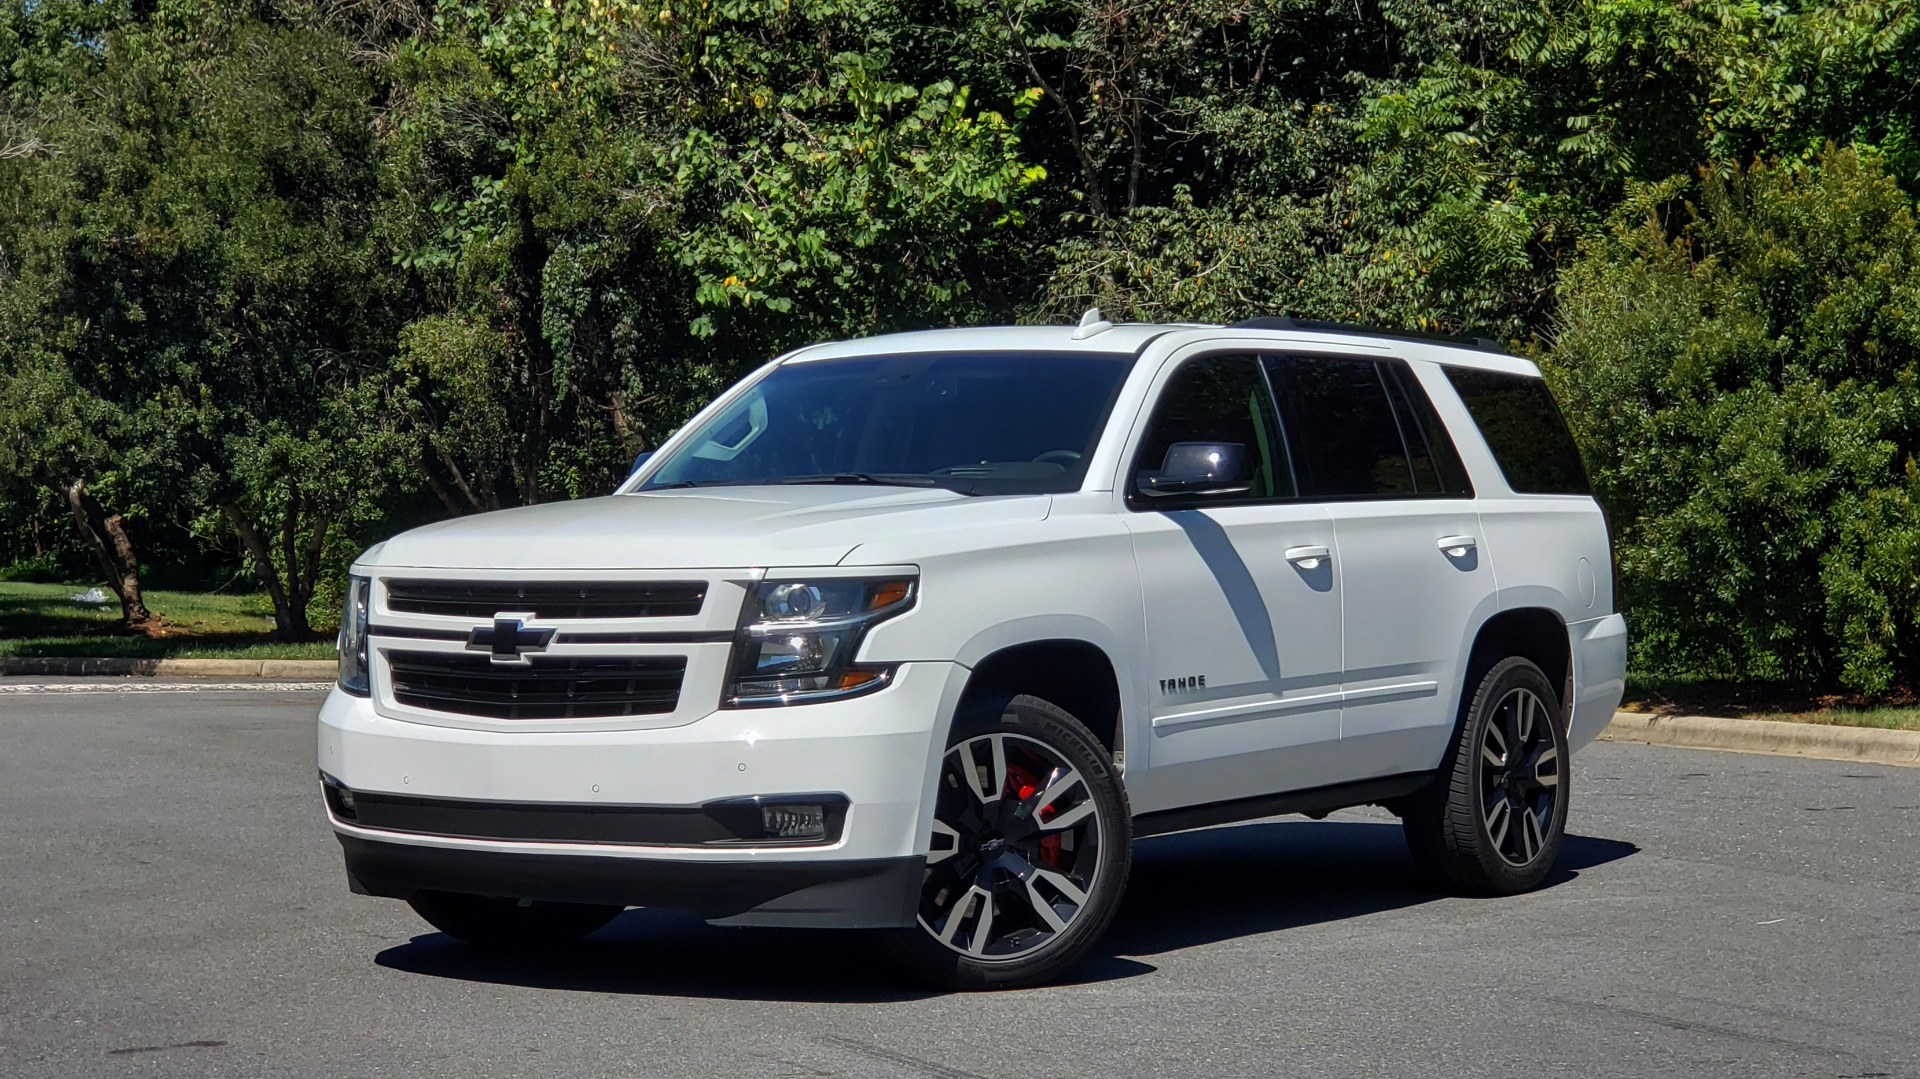 Used 2018 Chevrolet TAHOE PREMIER 4WD / 6.2L V8 / NAV / SUNROOF / ENT / BOSE / 3-ROW / REARVIEW for sale Sold at Formula Imports in Charlotte NC 28227 3